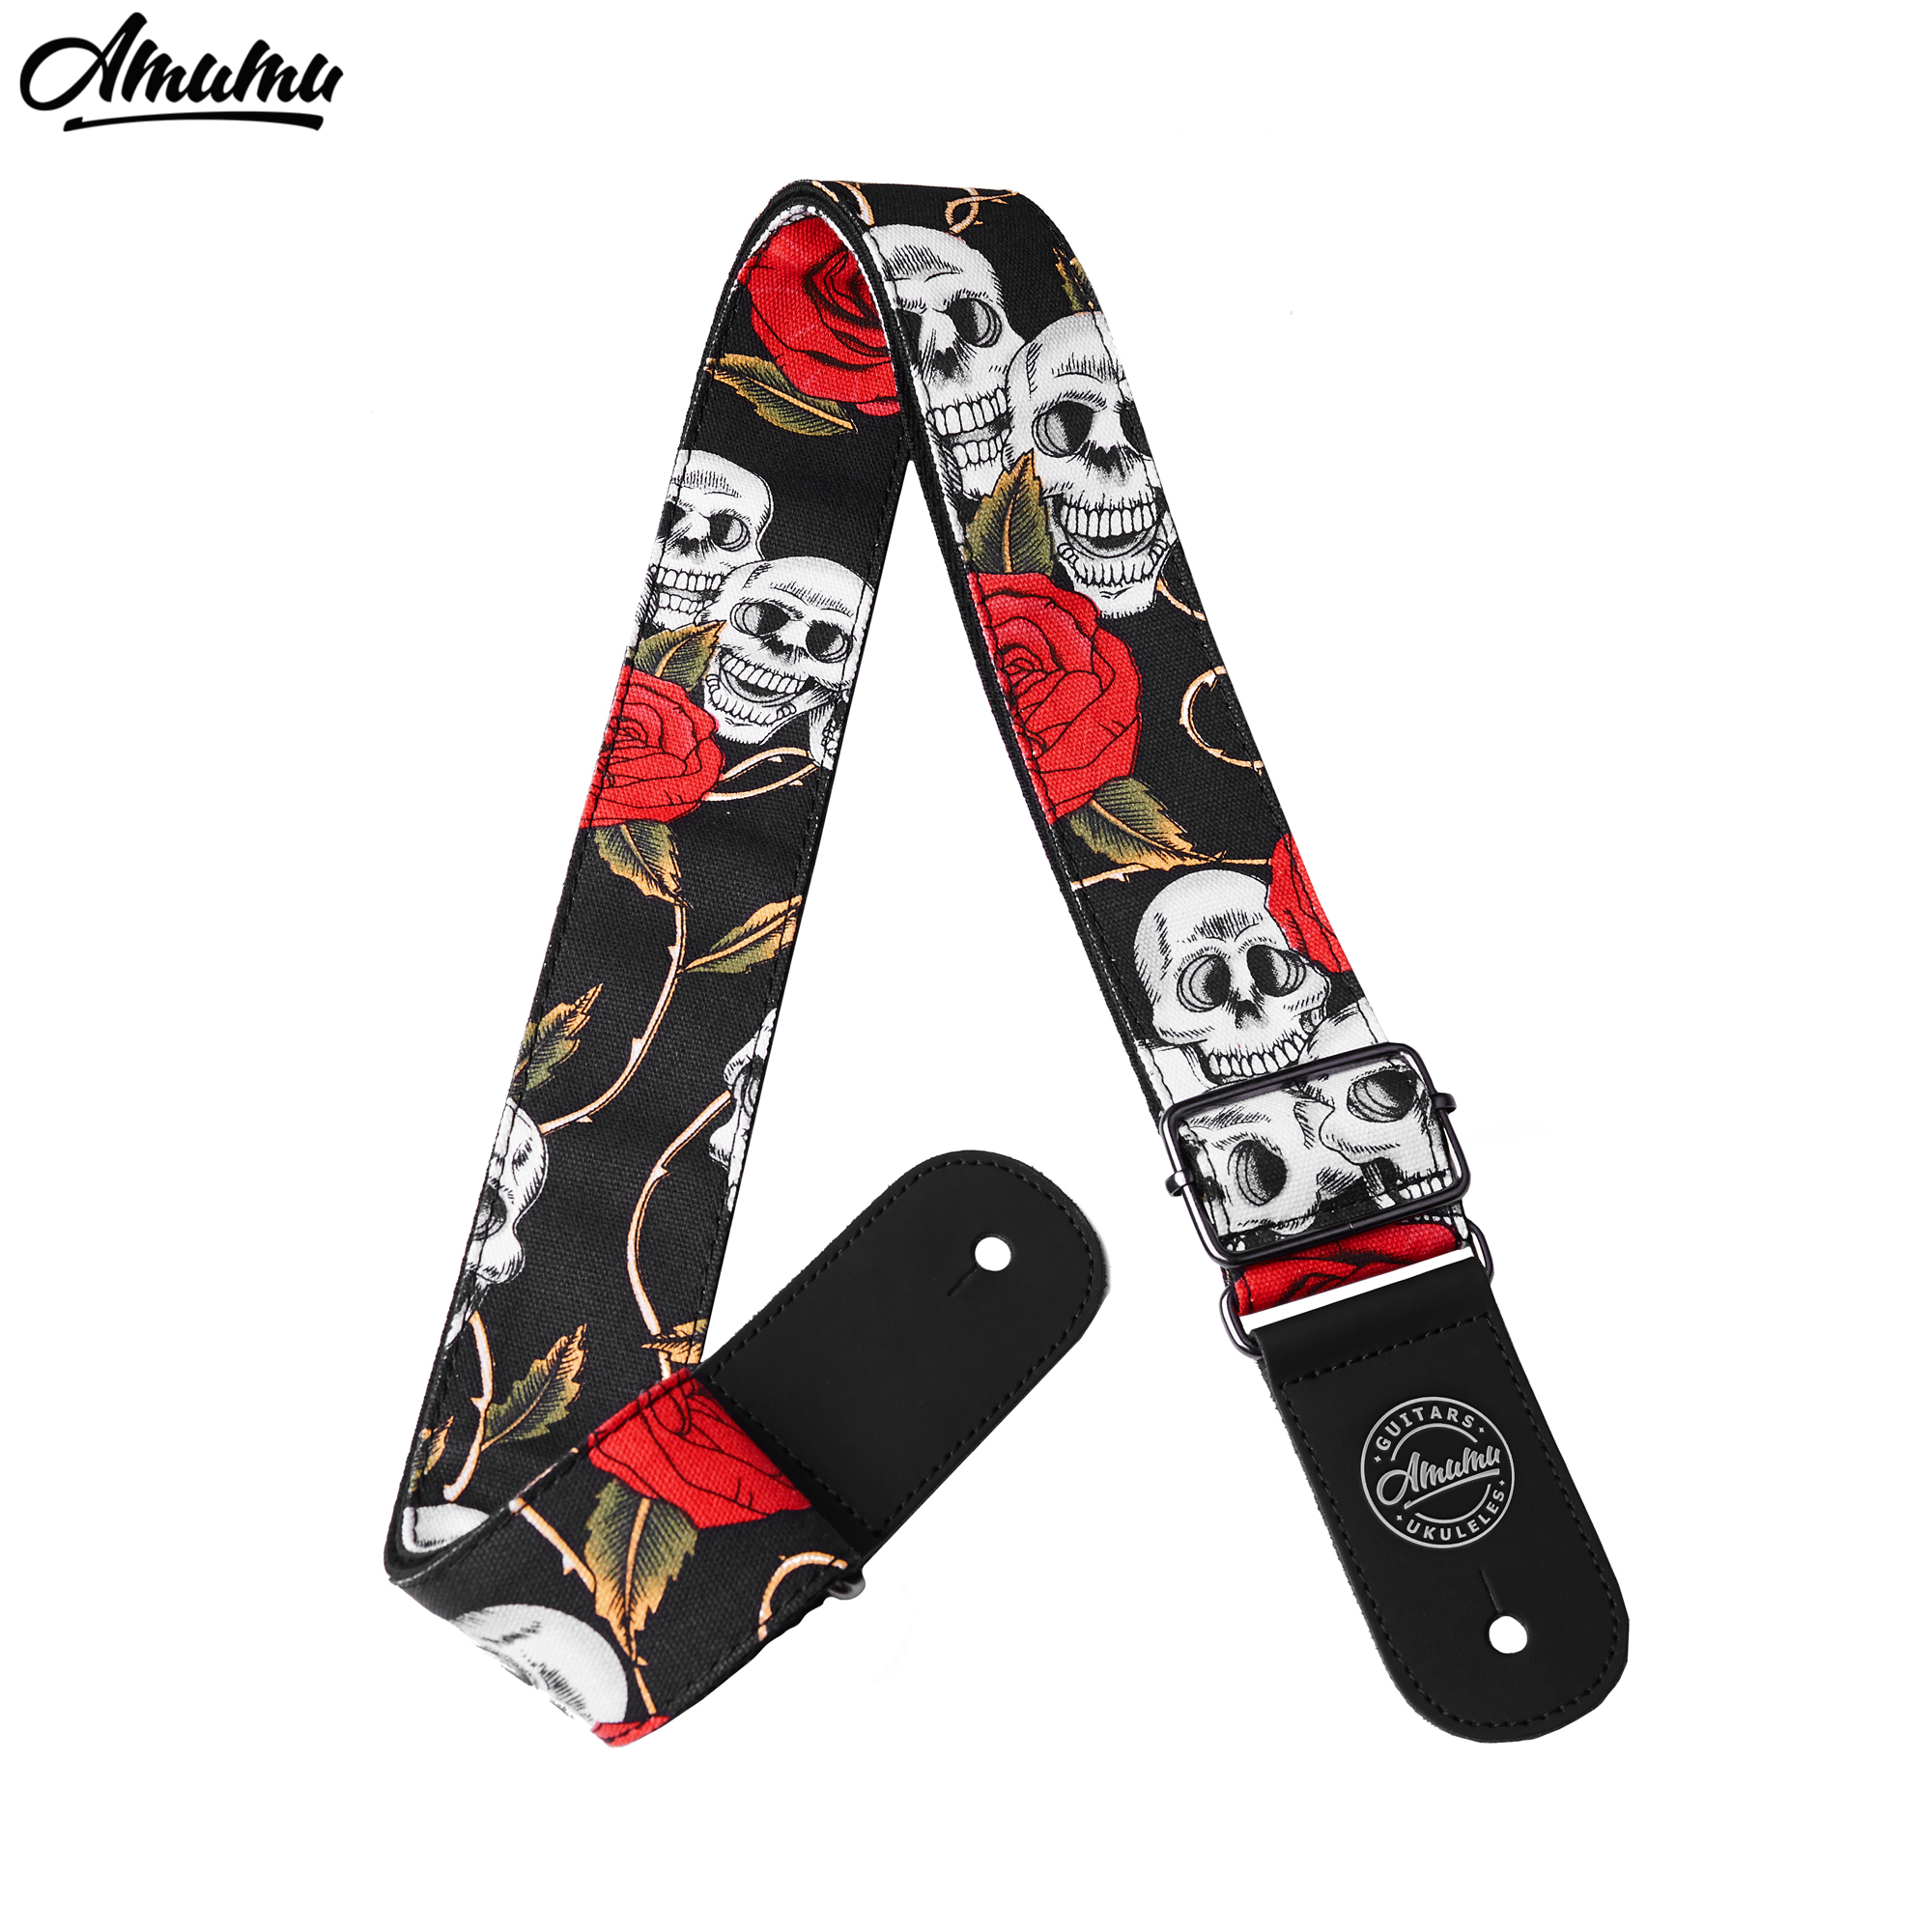 Skull and Rose Cotton Guitar Straps for Acoustic Electric Guitar 91-160cm Length with Leather End  5cm Width Amumu S625 acoustic electric guitar strap woven cloth leather end police line do not cross width 5cm 2 length 92 154cm 36 60 yellow black